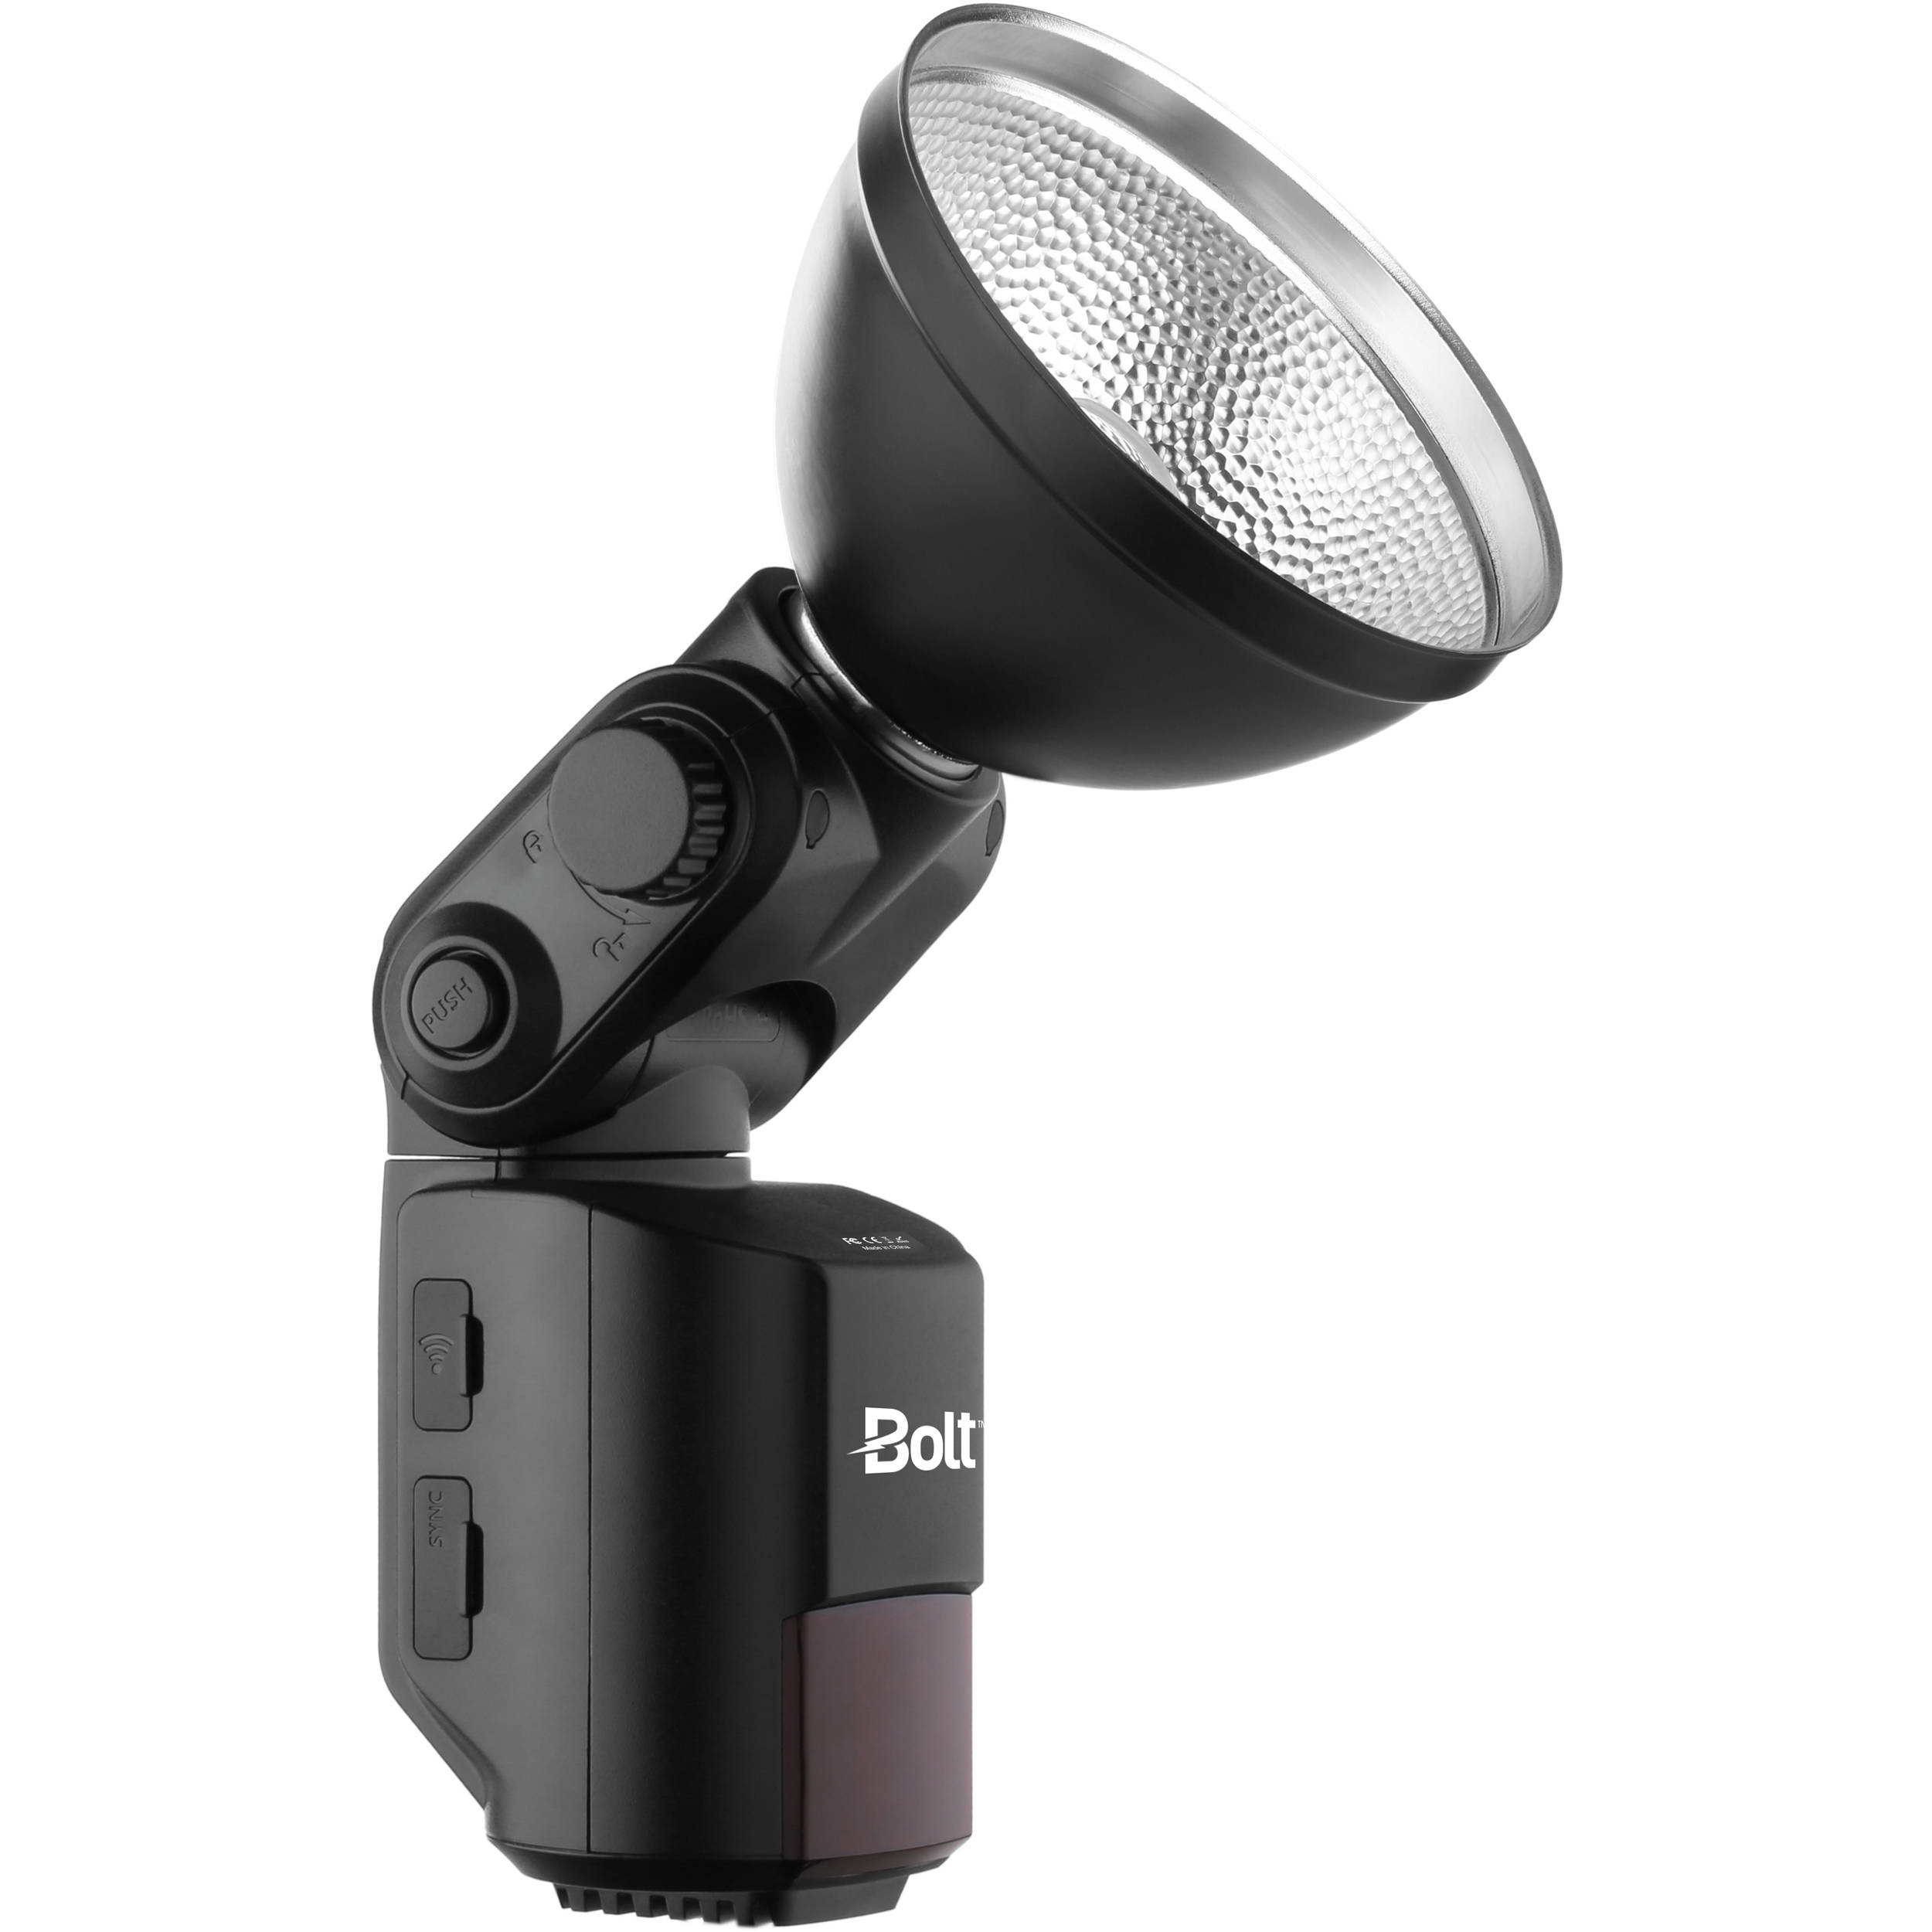 Bolt Vb Bare Bulb